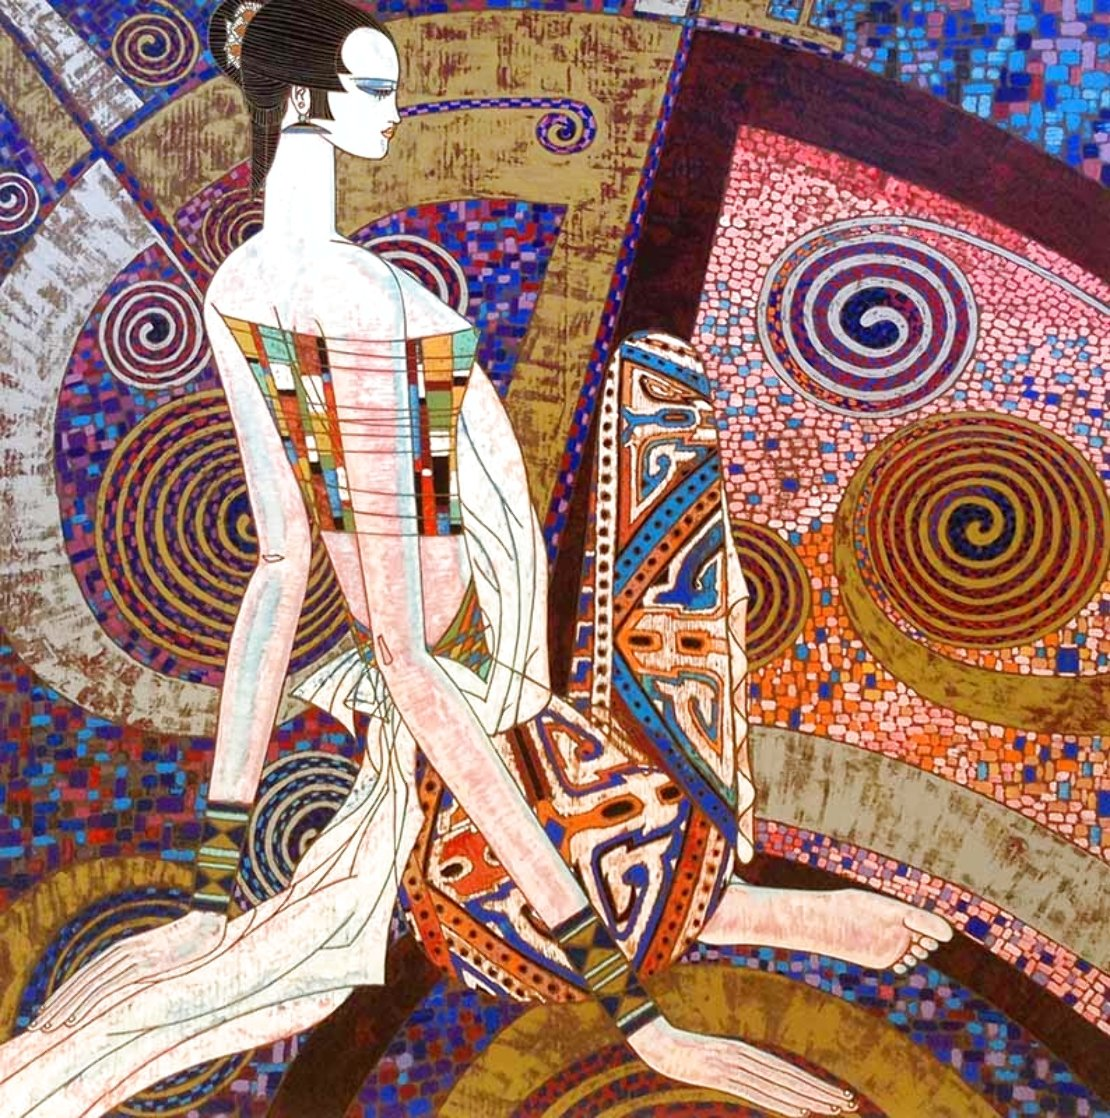 Golden Empress 1990 Limited Edition Print by Shao Kuang Ting